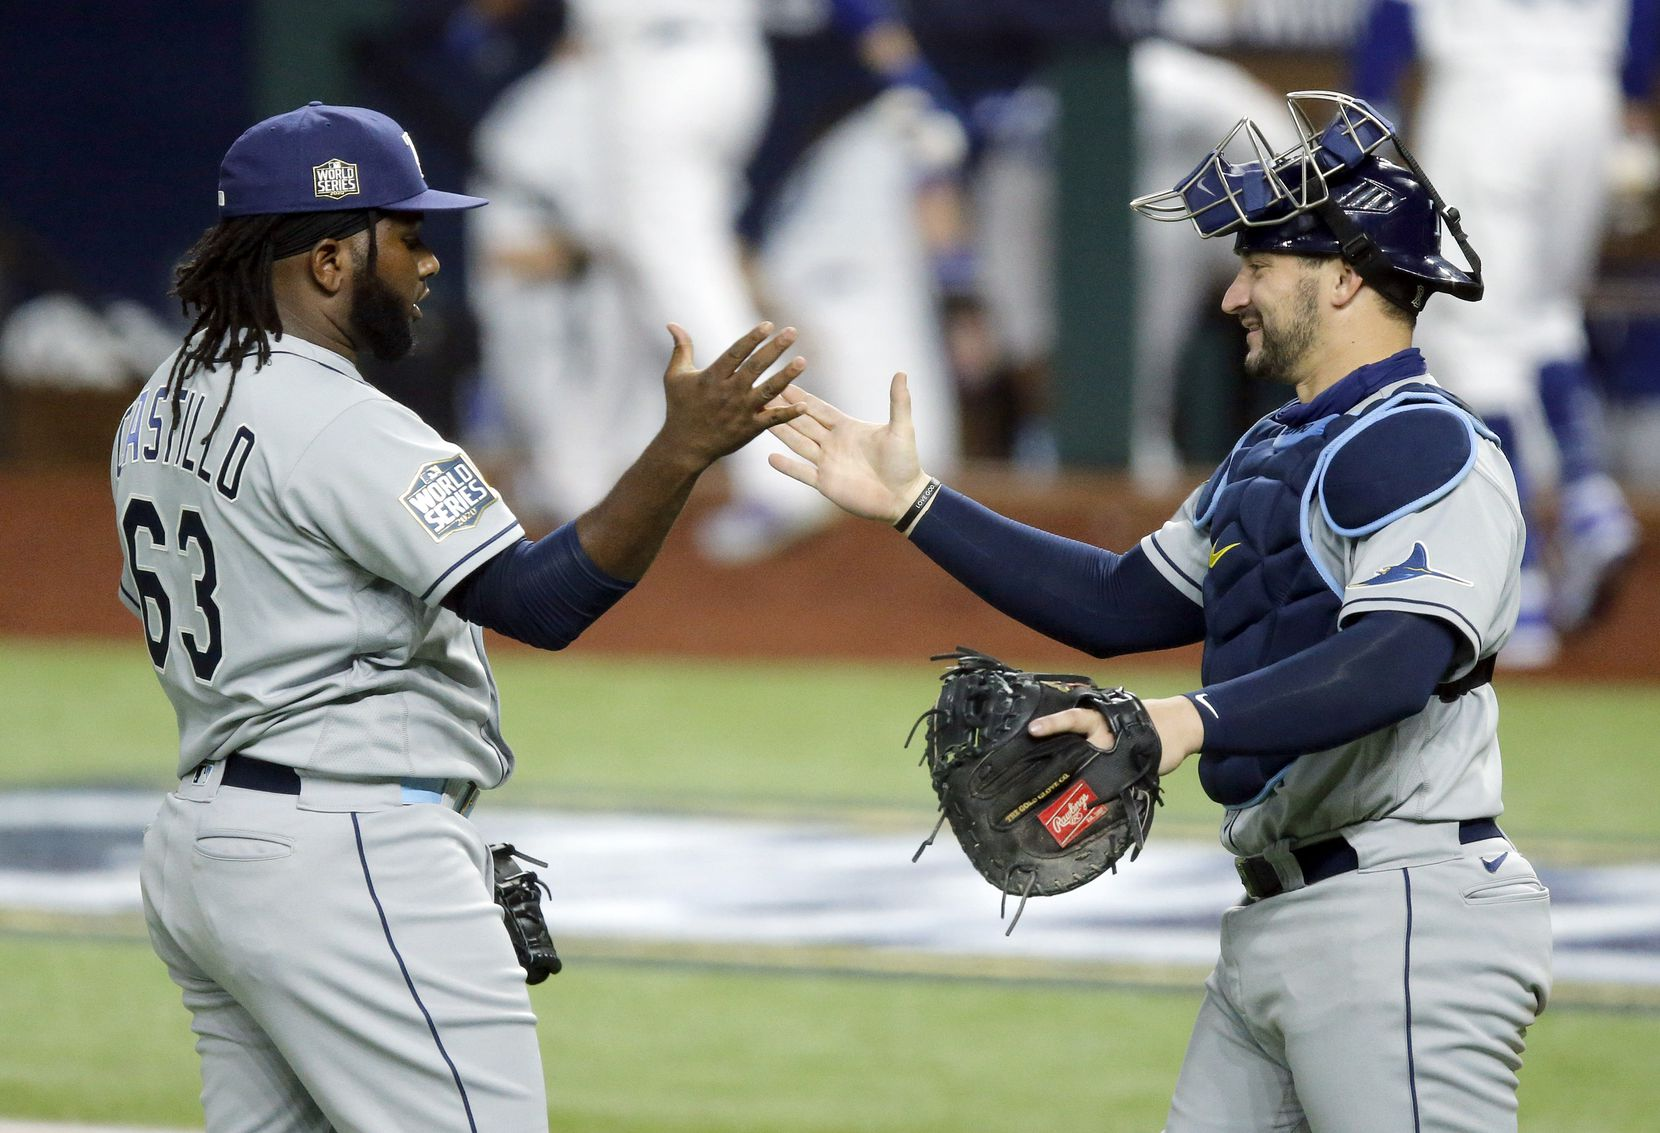 Tampa Bay Rays catcher Mike Zunino (10) congratulates relief pitcher Diego Castillo (63) on the 6-4 win over the Los Angeles Dodgers in Game 2 of the World Series at Globe Life Field in Arlington, Wednesday, October 21, 2020. (Tom Fox/The Dallas Morning News)